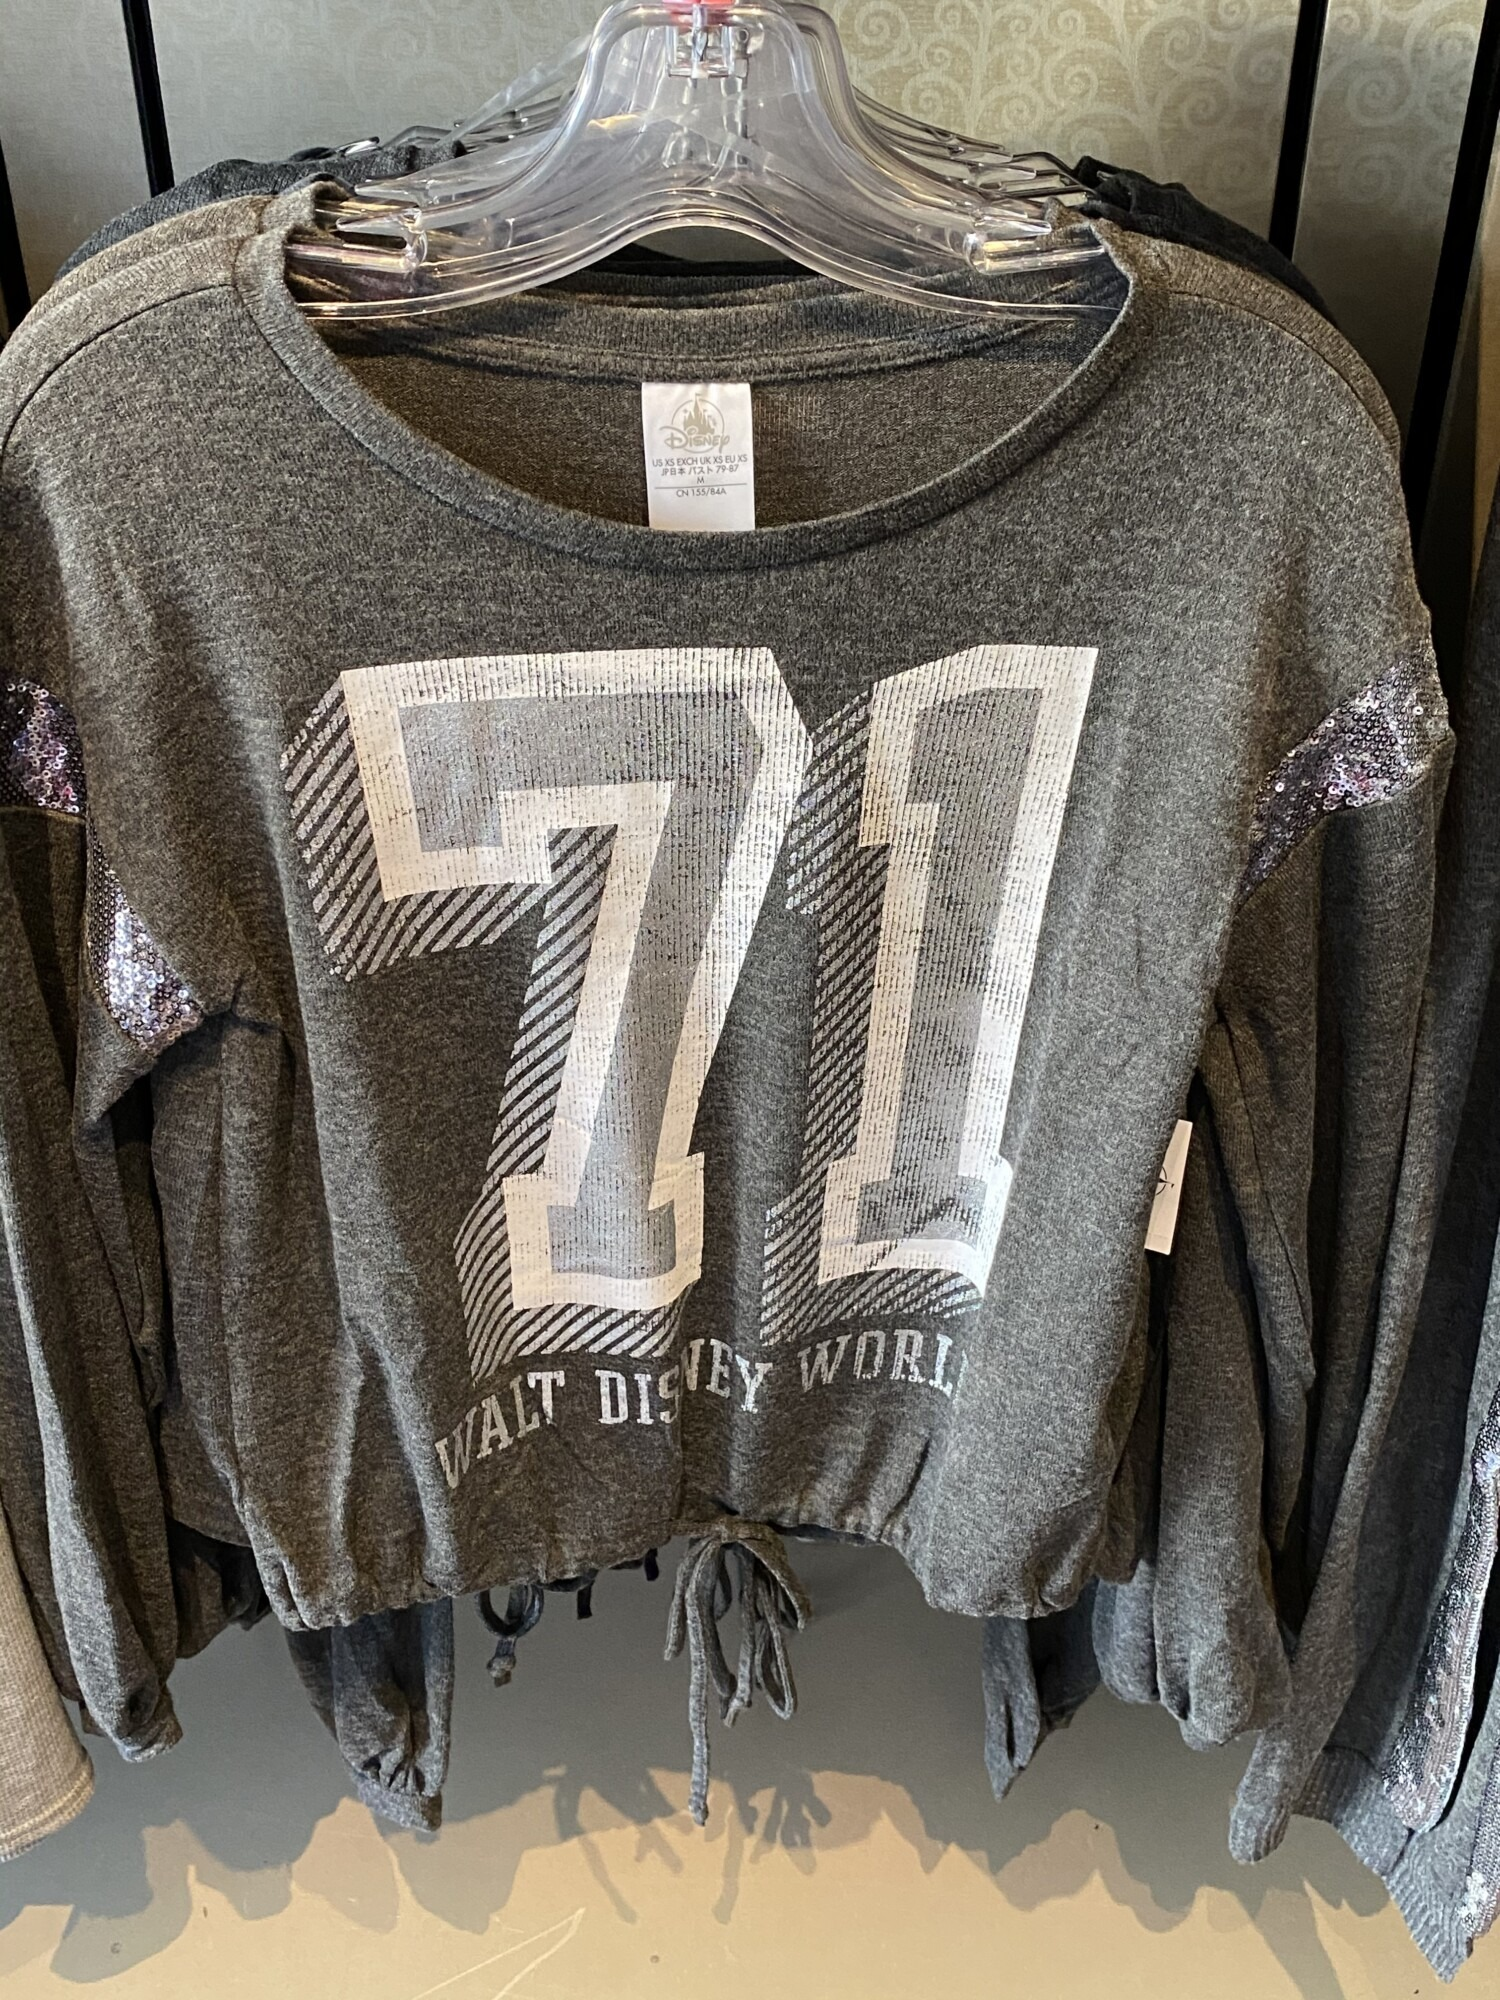 New Sparkly Silver Apparel at Hollywood Studios! 1